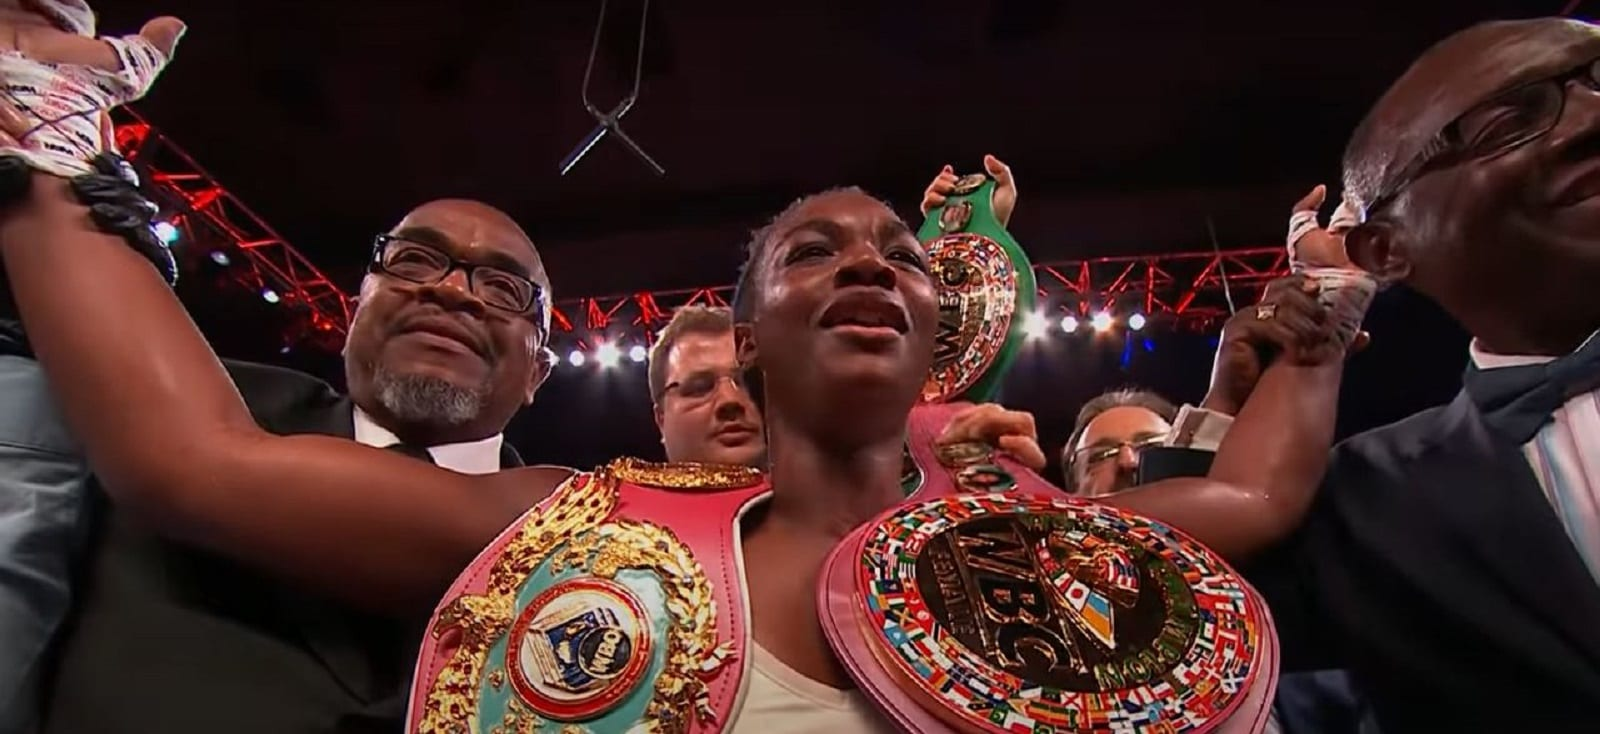 claressa shields reveals sobering story when she won Olympic Gold